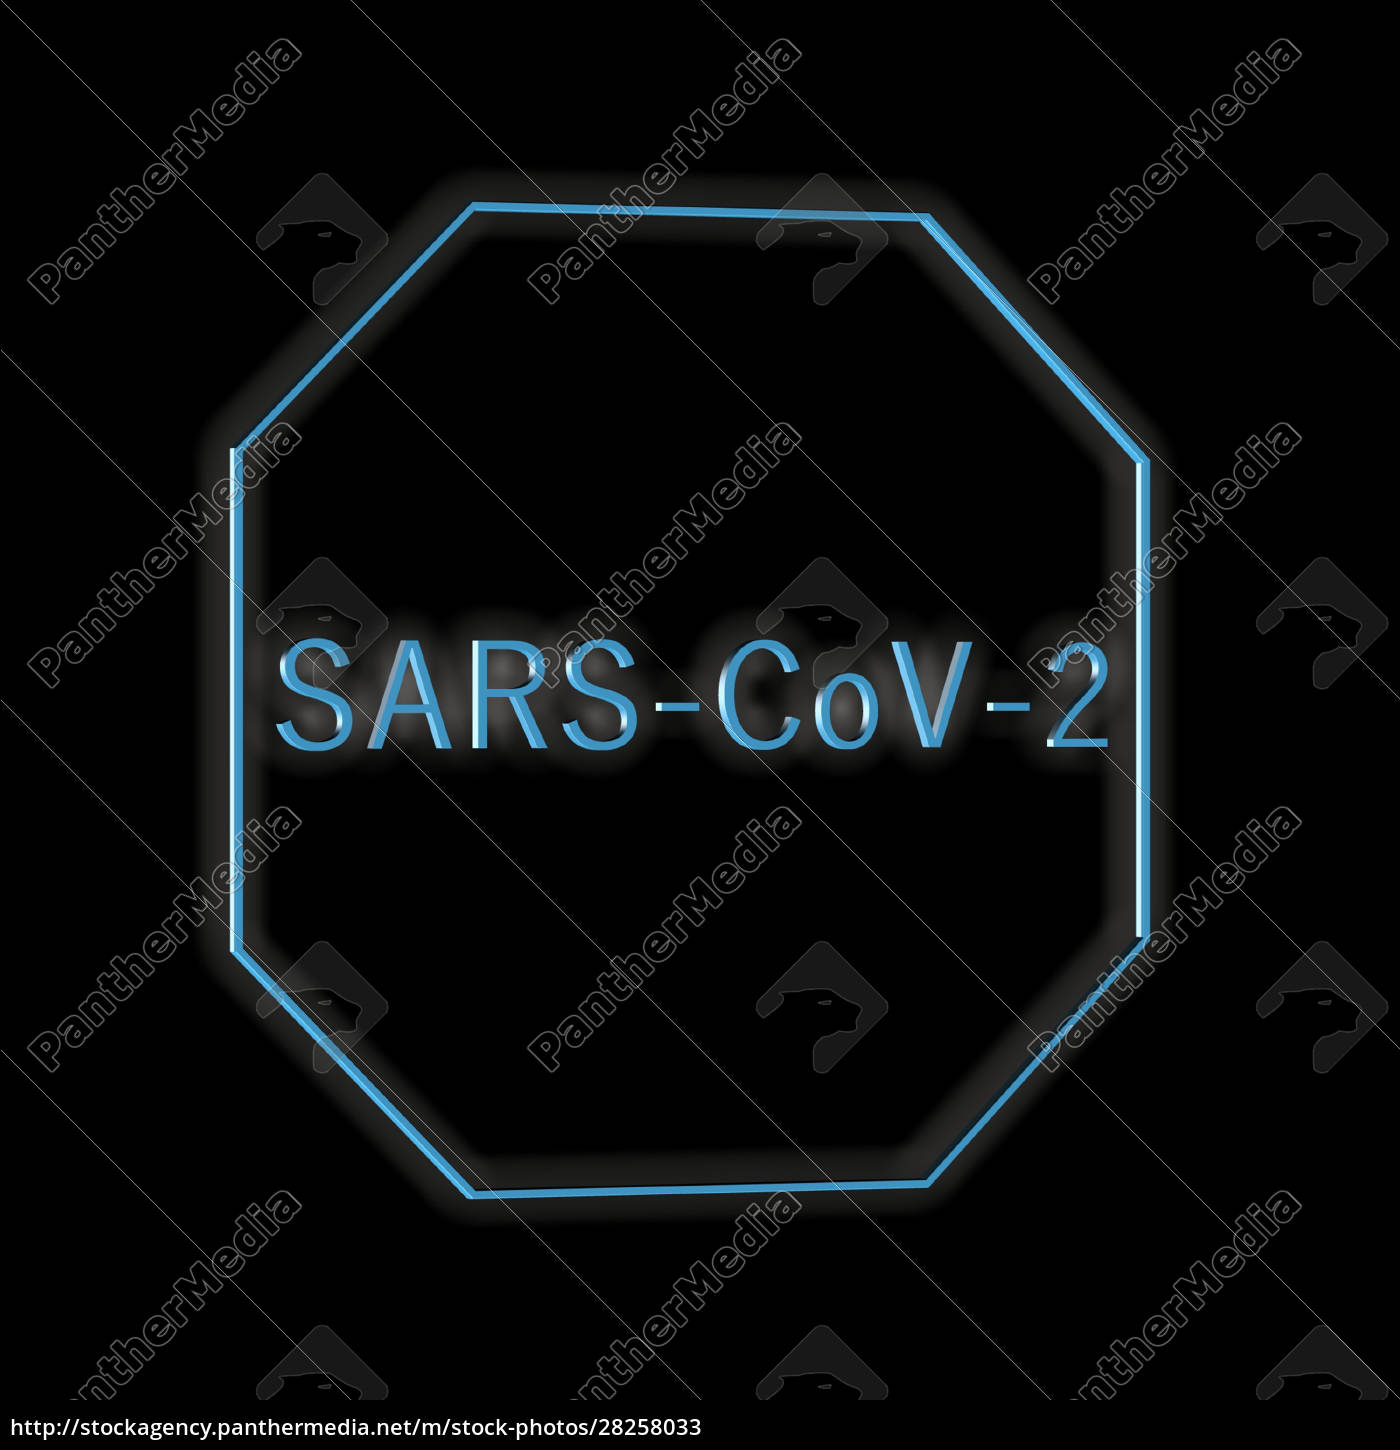 sars-cov-2, -, word, or, text, as - 28258033